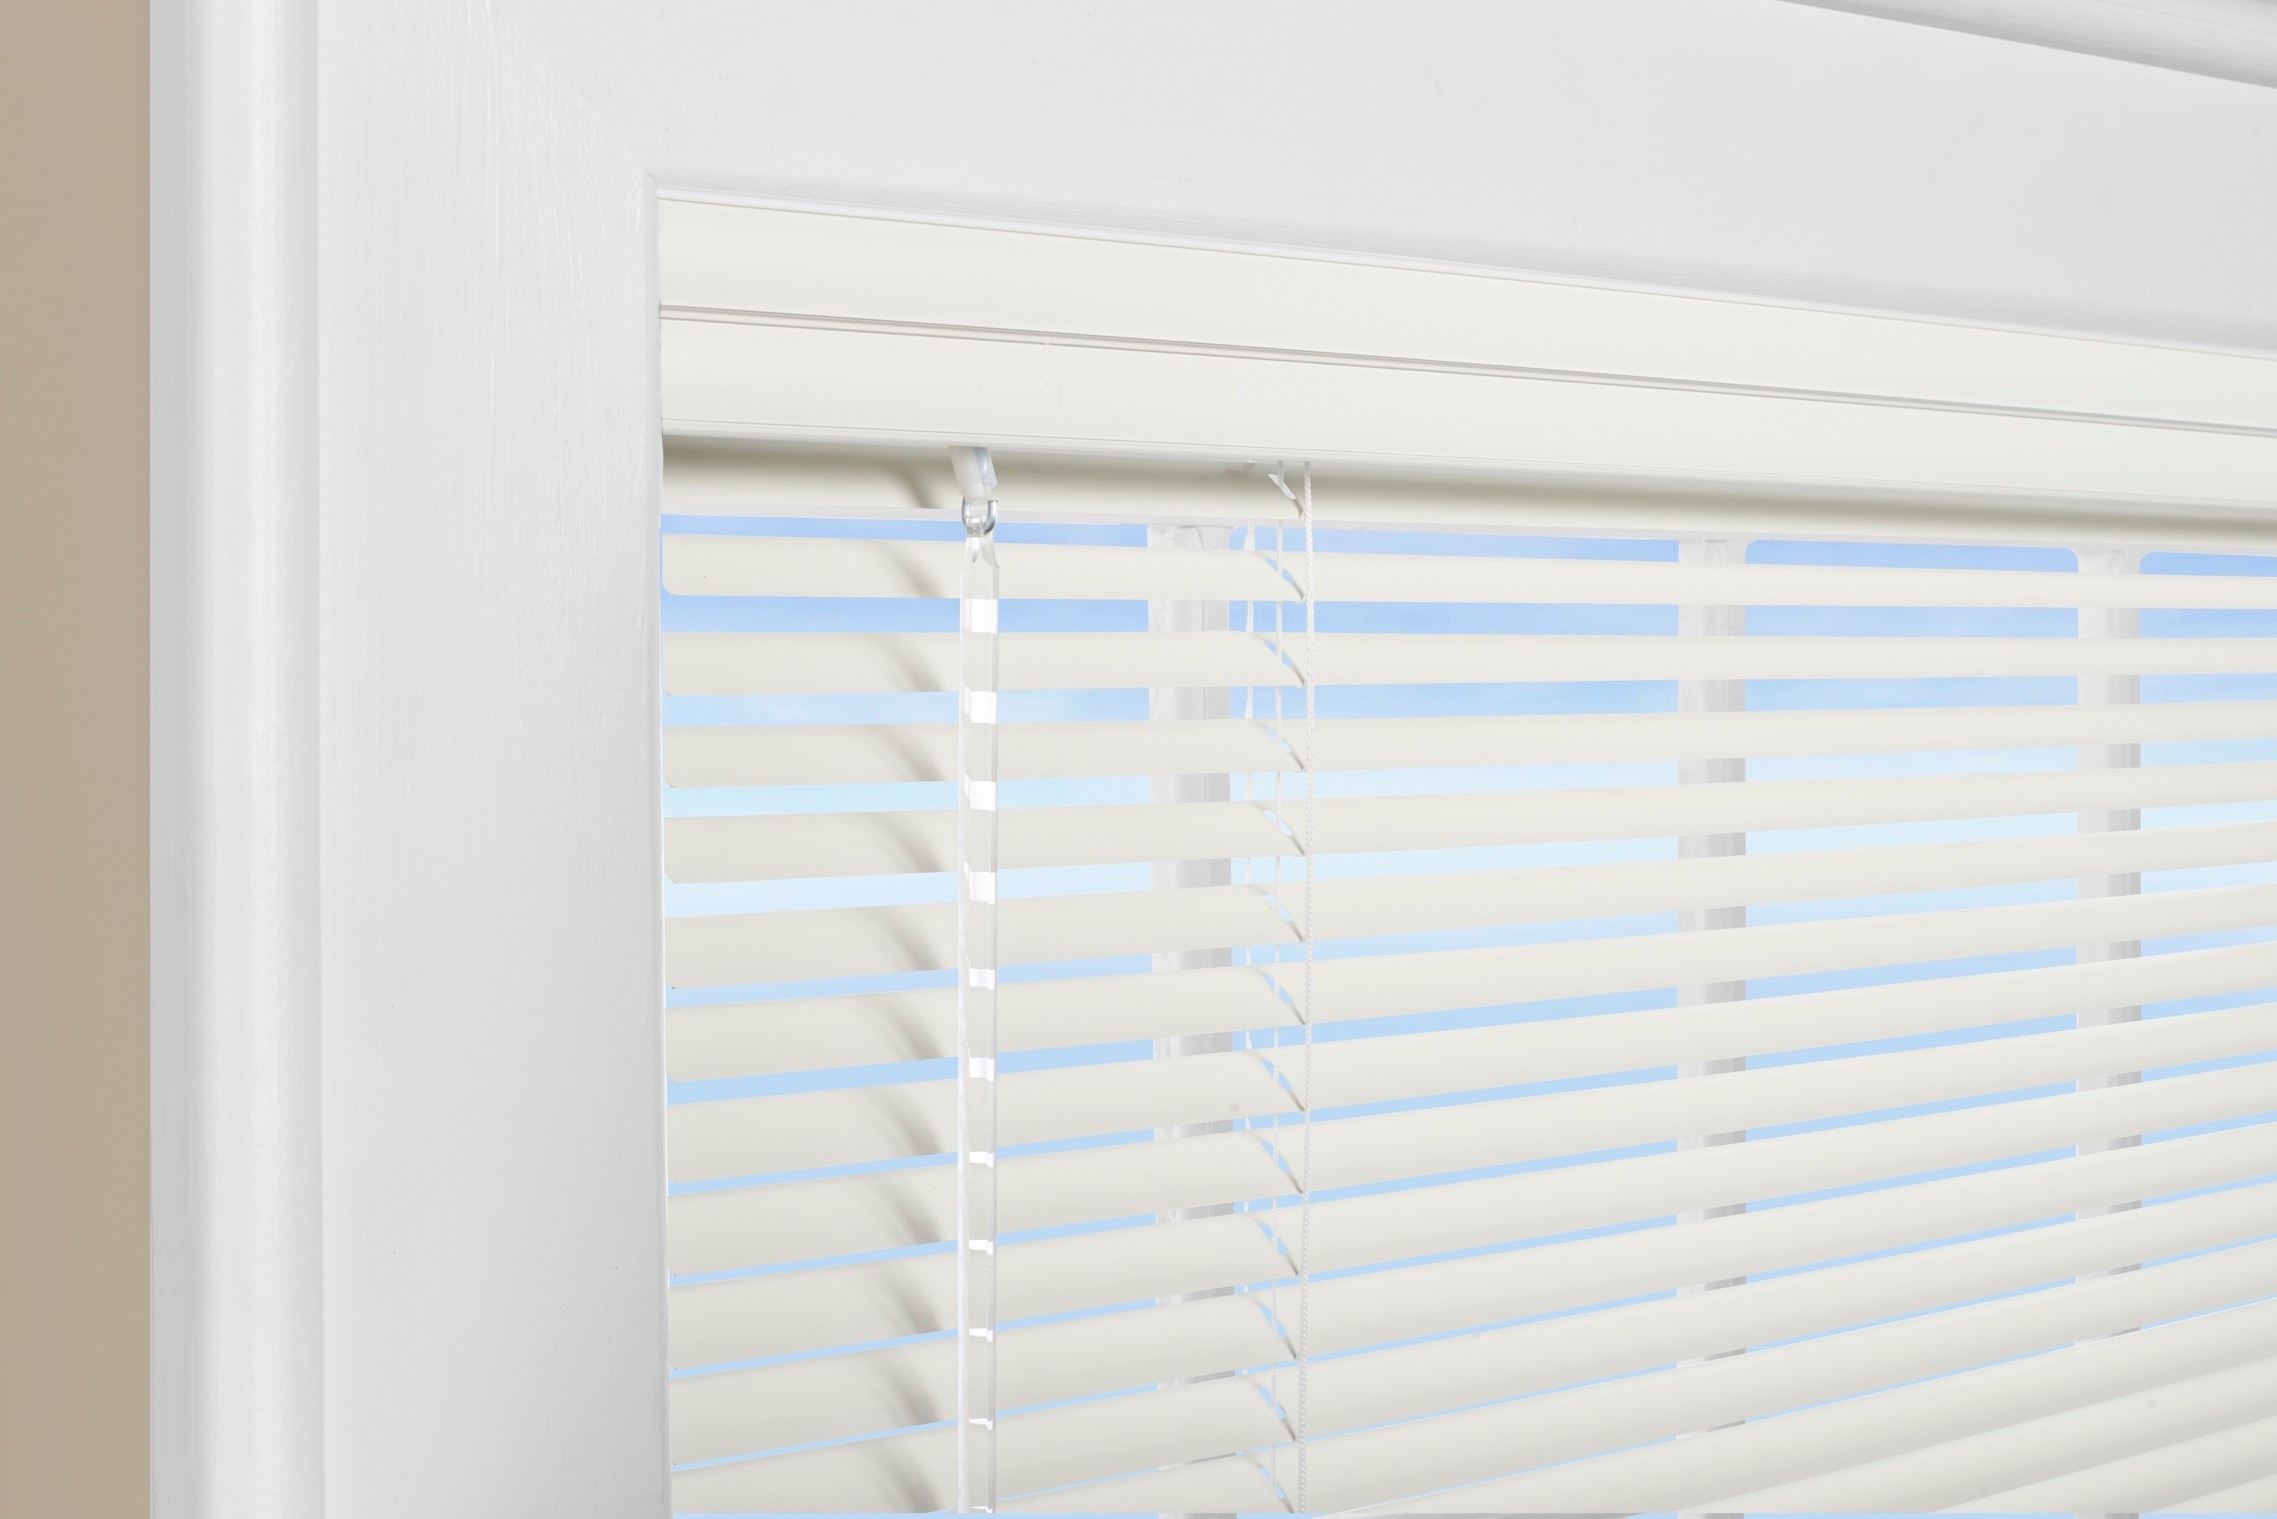 vertical blind levolor of depot slats interior home window replacement design blinds beautiful mini